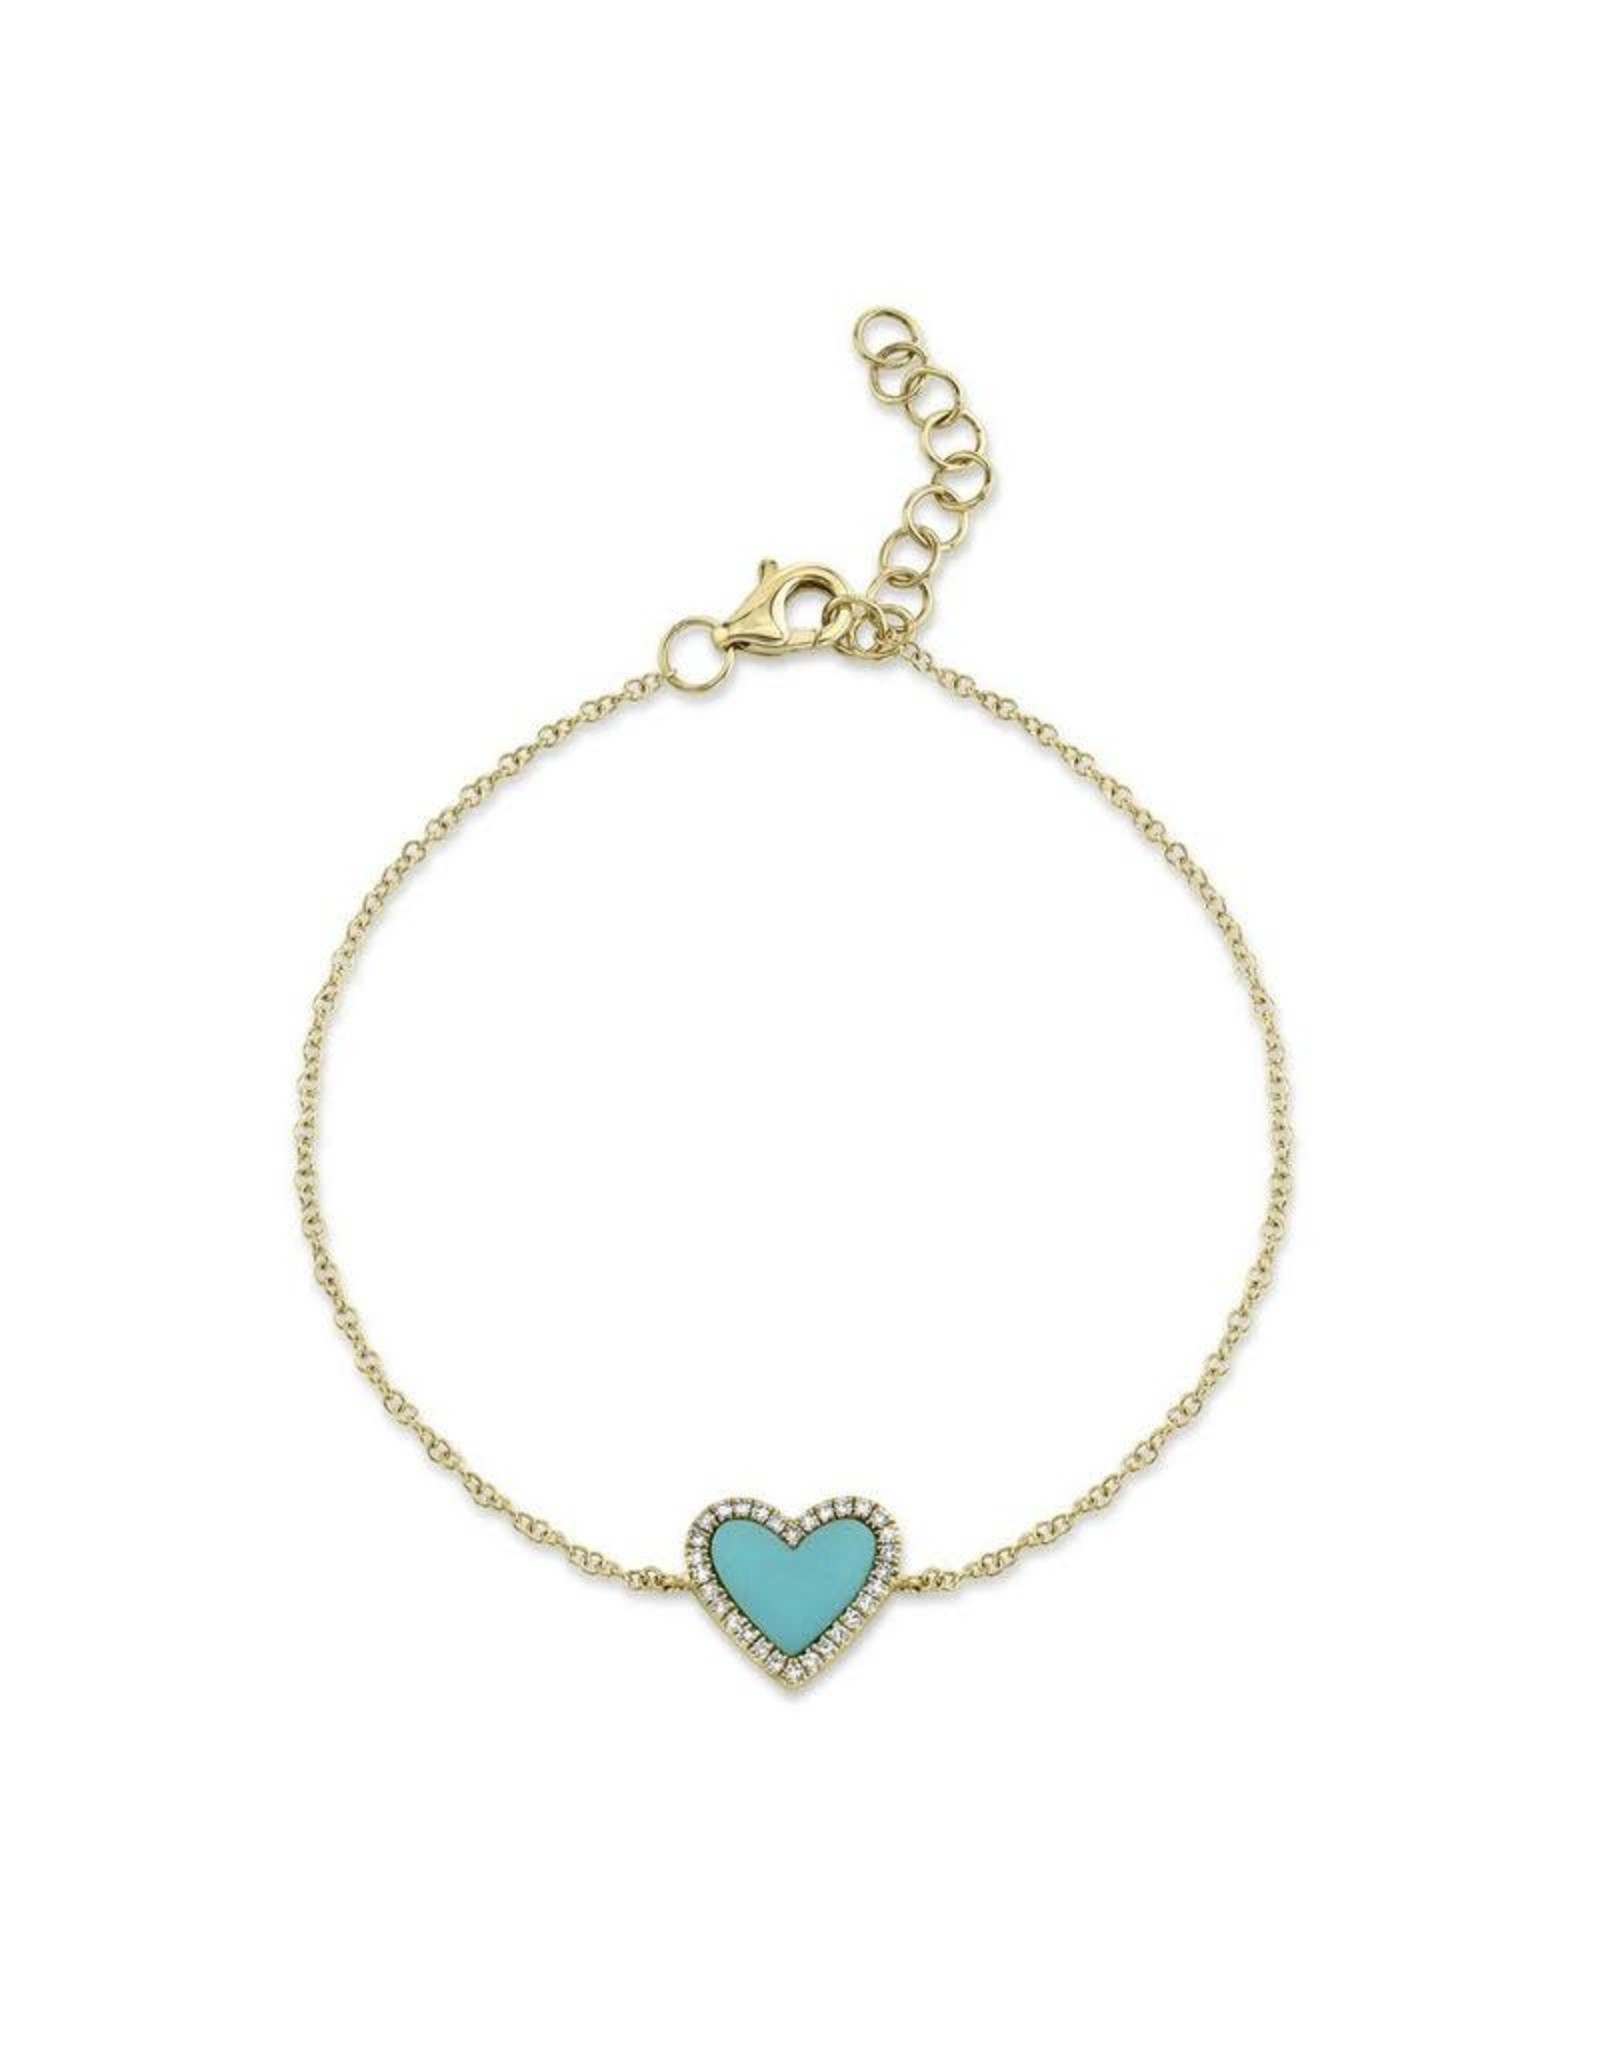 14K Yellow Gold Turquoise and Diamond Heart Bracelet, TQ: 0.06ct, D: 0.09ct